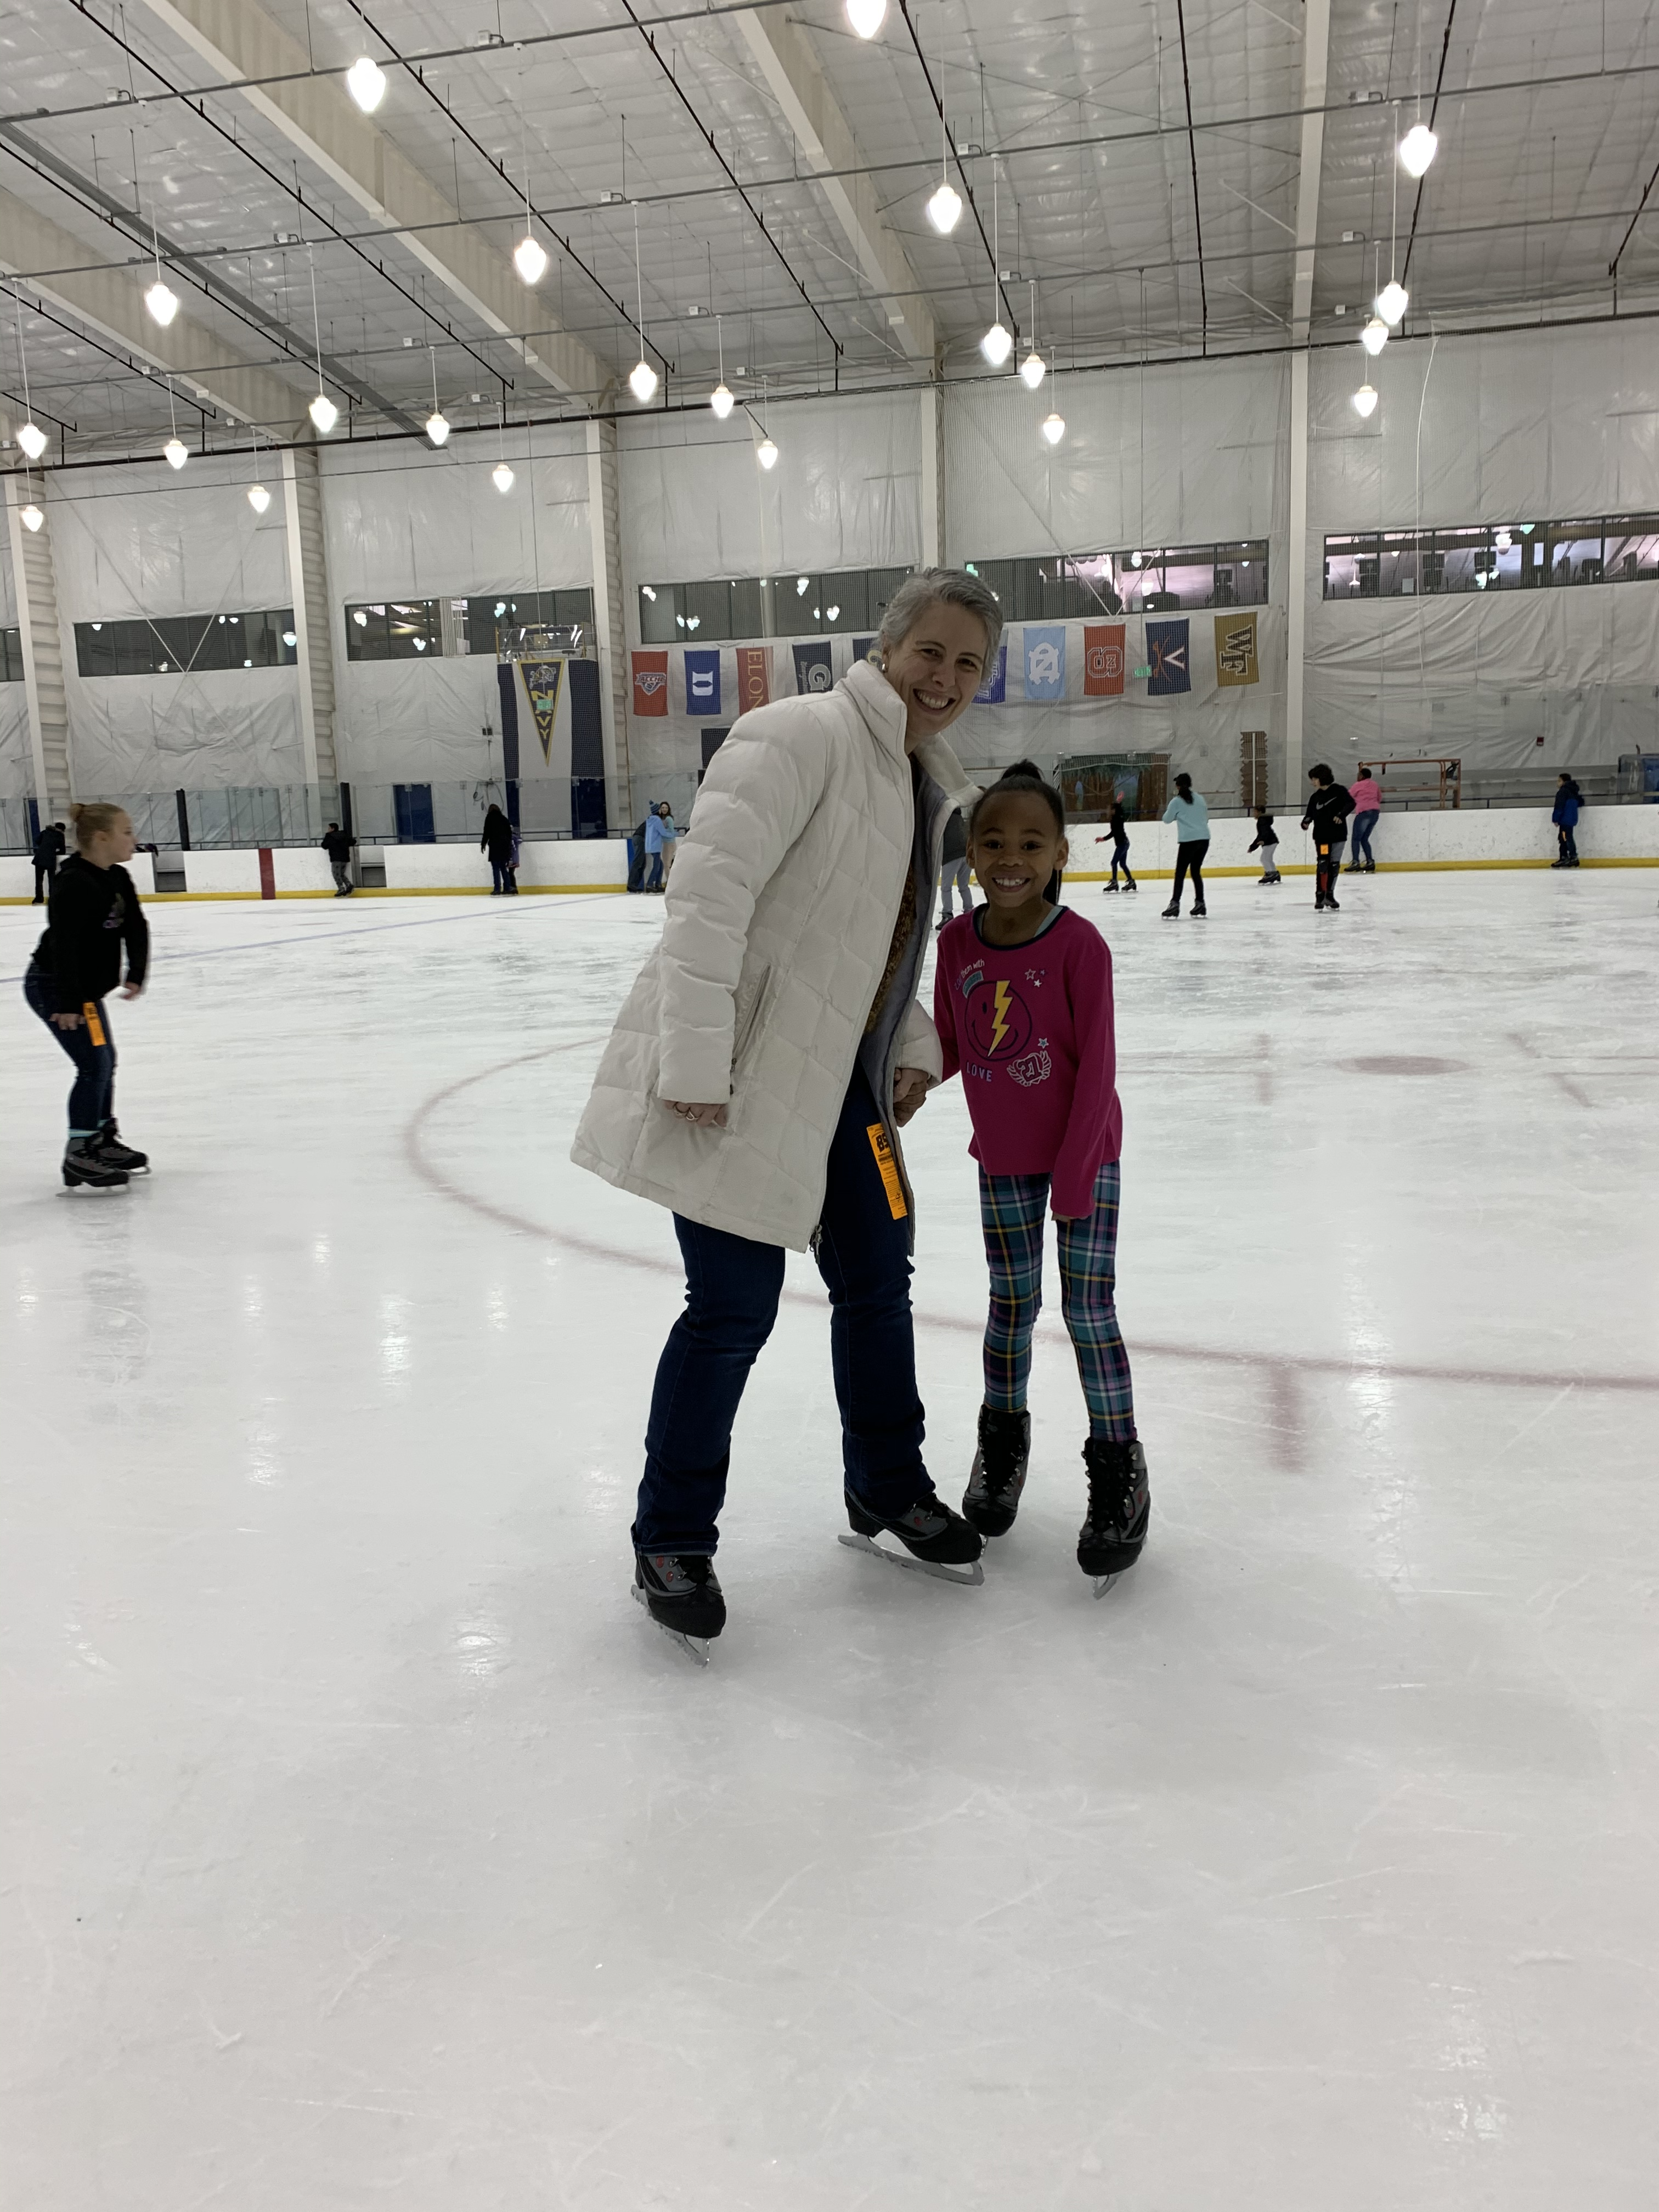 Officer and child standing on an ice skating rink.